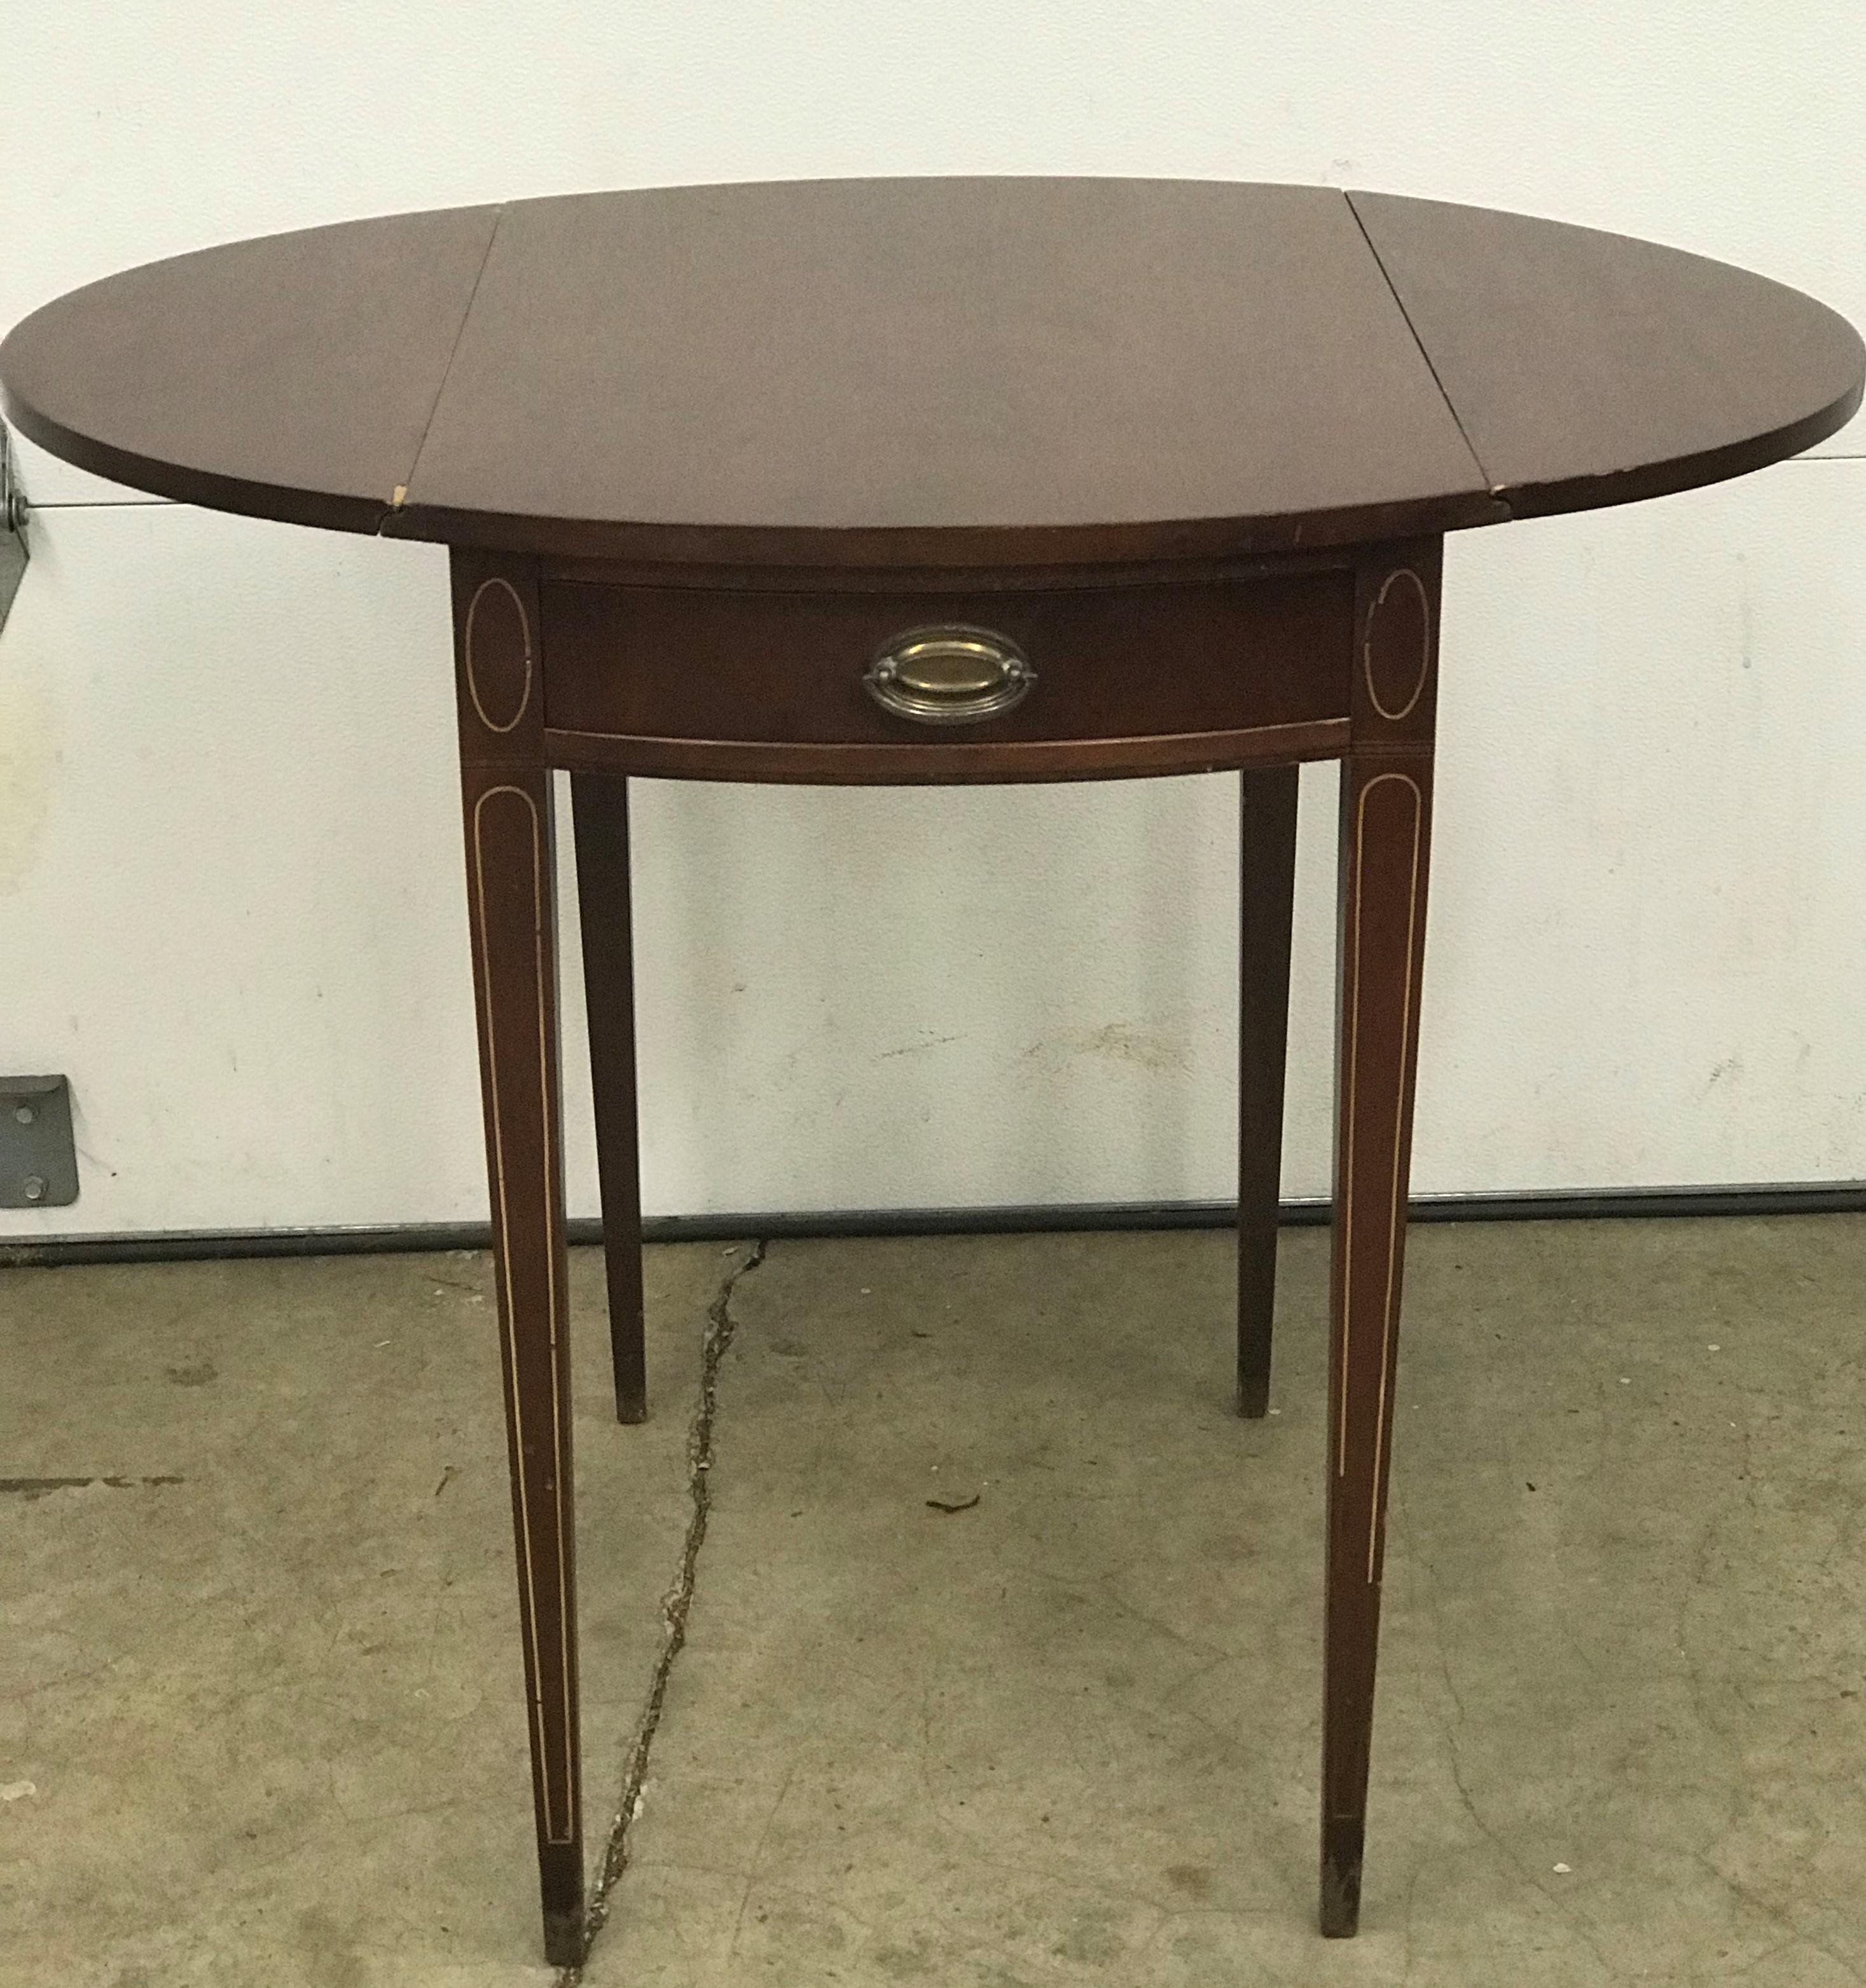 Beautiful Mid 20th Century Mahogany Drop Leaf Side Table! Very Versatile  With Or Without